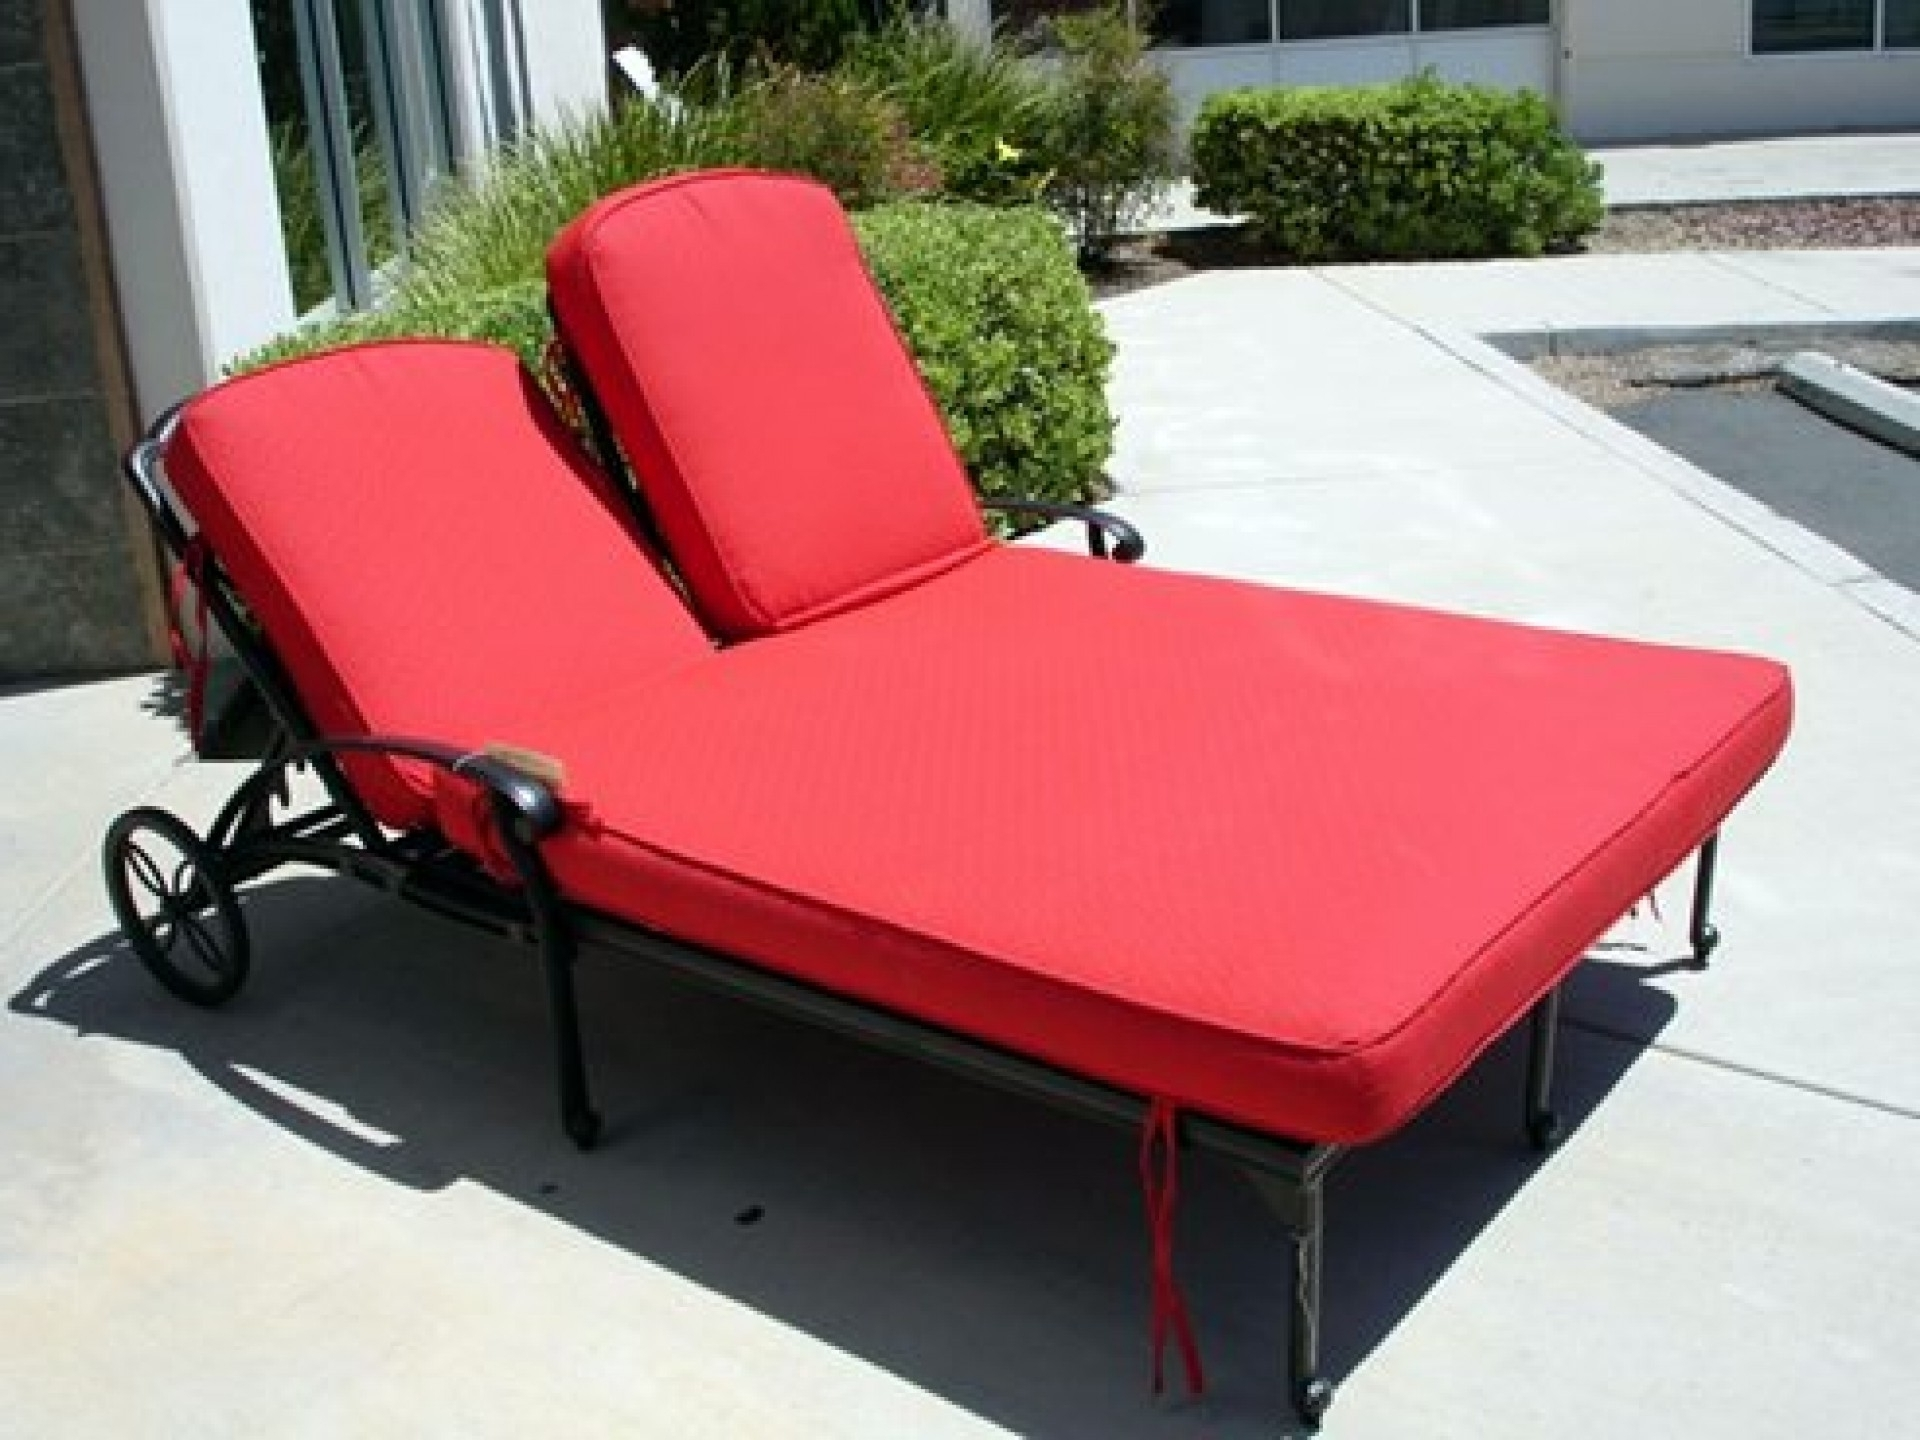 15 Ideas Of Double Chaise Lounge Outdoor Chairs